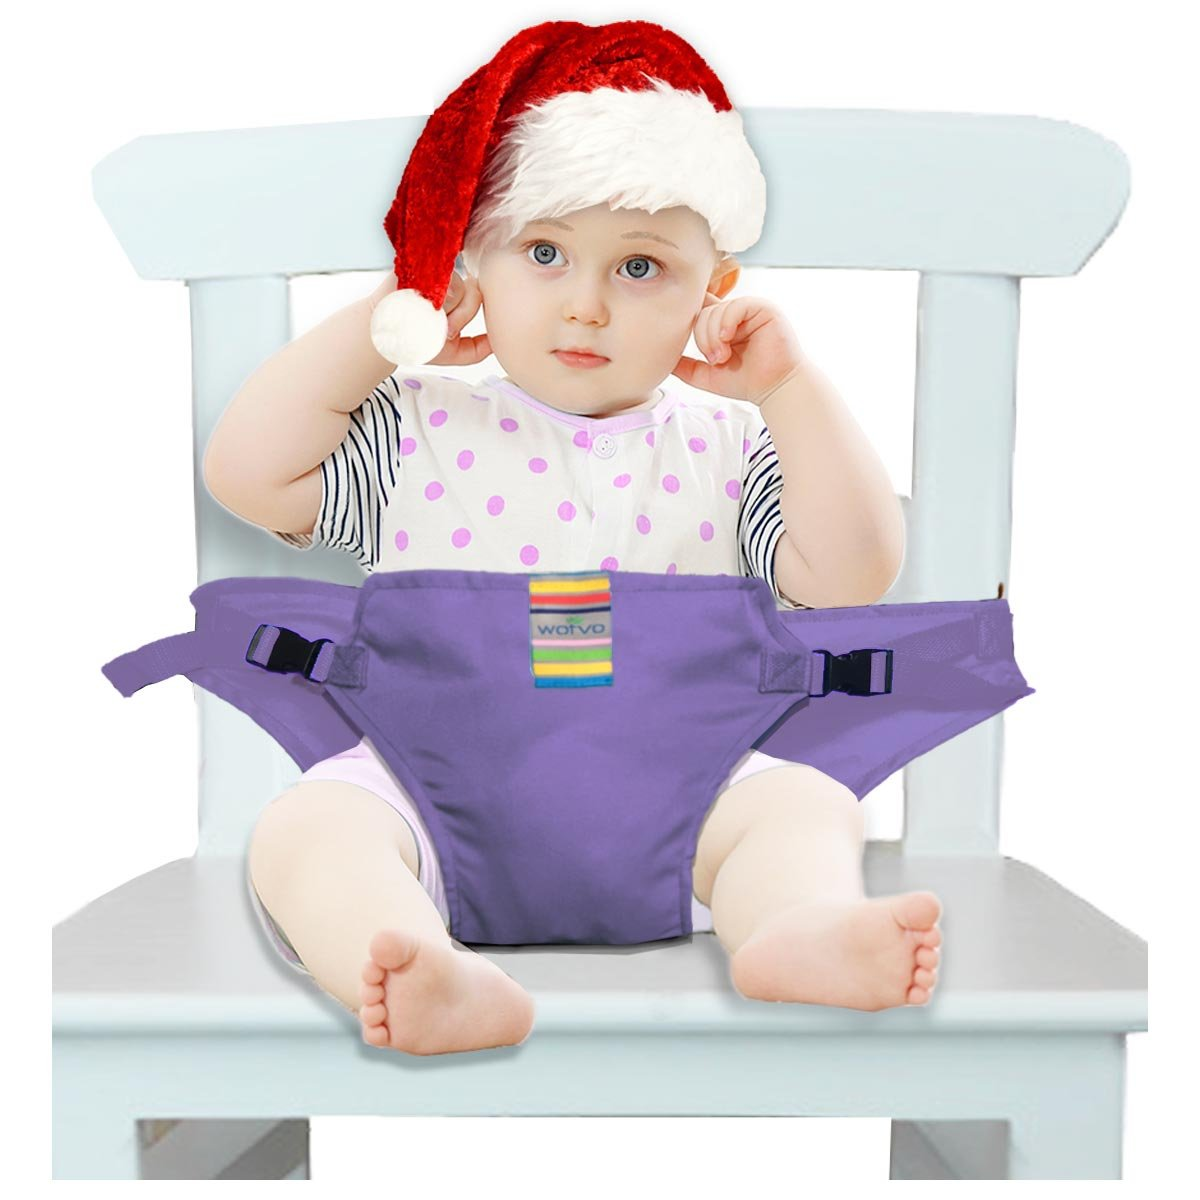 The Washable Portable Travel High Chair Booster Baby Seat with Straps Toddler Safety Harness Baby Feeding The Strap (6 Color) (Purple)